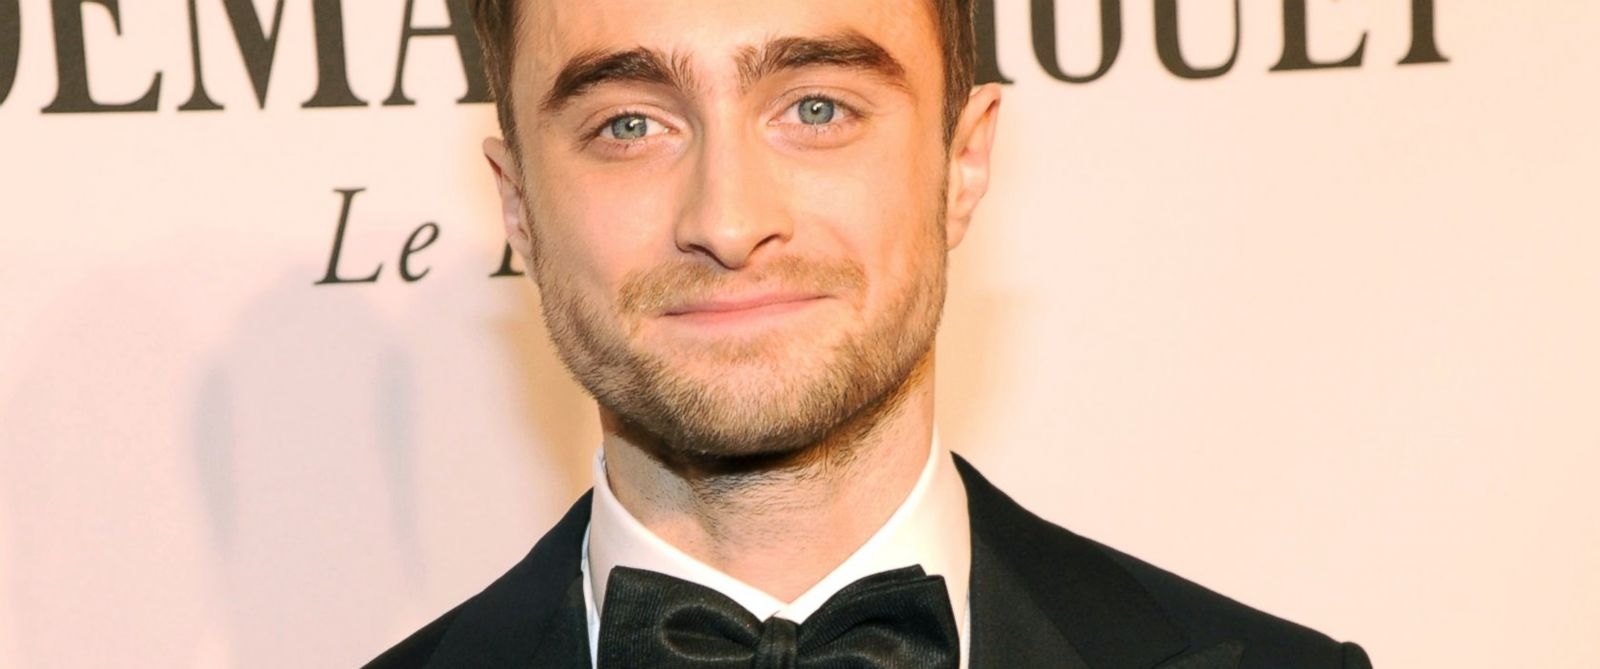 PHOTO: Daniel Radcliffe attends the 68th Annual Tony Awards at Radio City Music Hall, June 8, 2014 in New York.